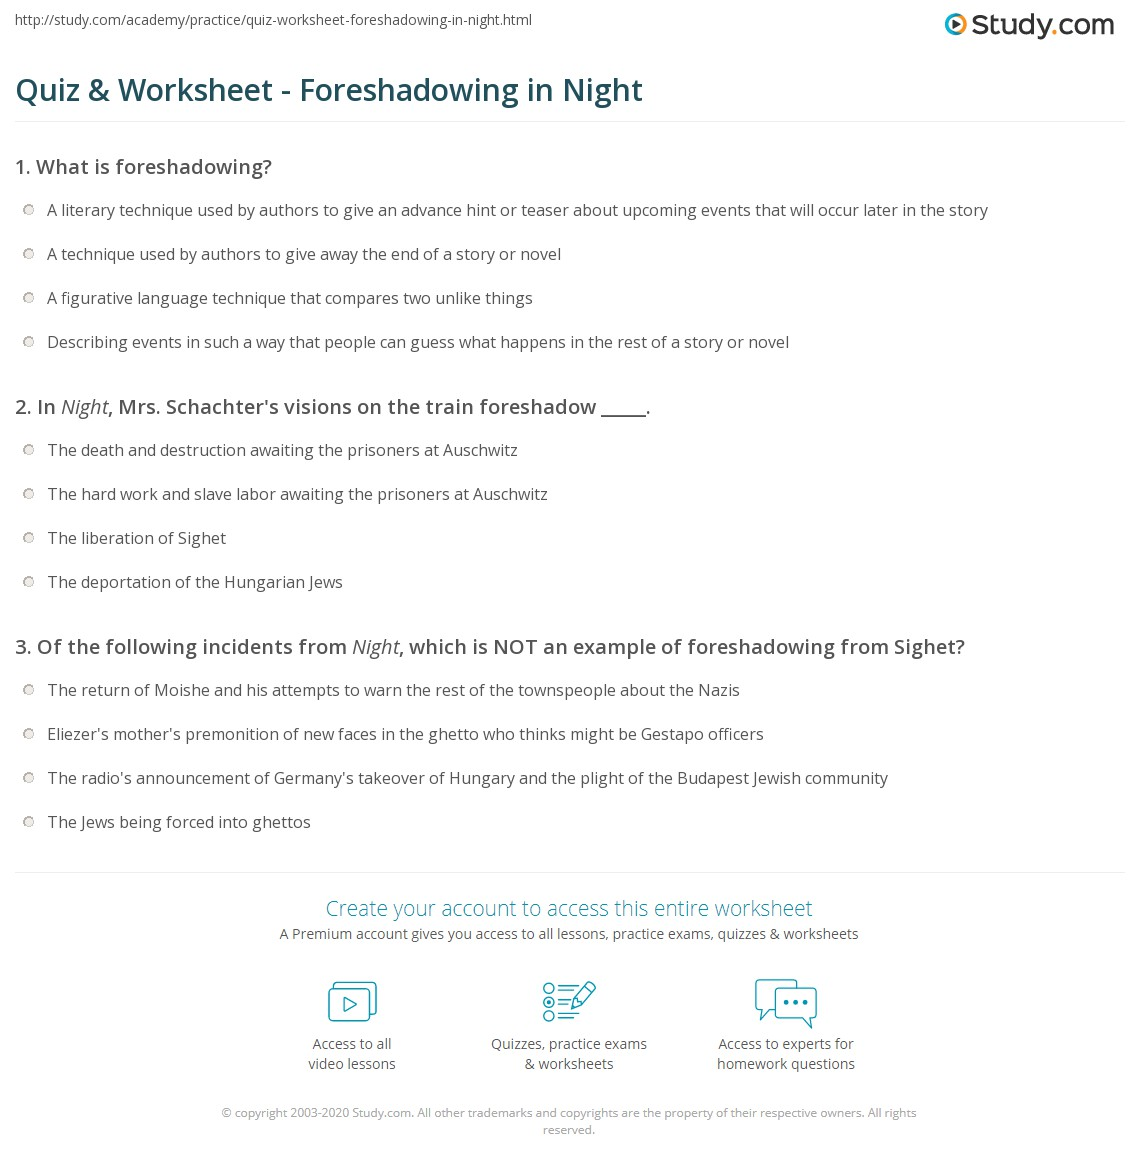 Night By Elie Wiesel Quotes With Page Numbers Pleasing Quiz & Worksheet  Foreshadowing In Night  Study